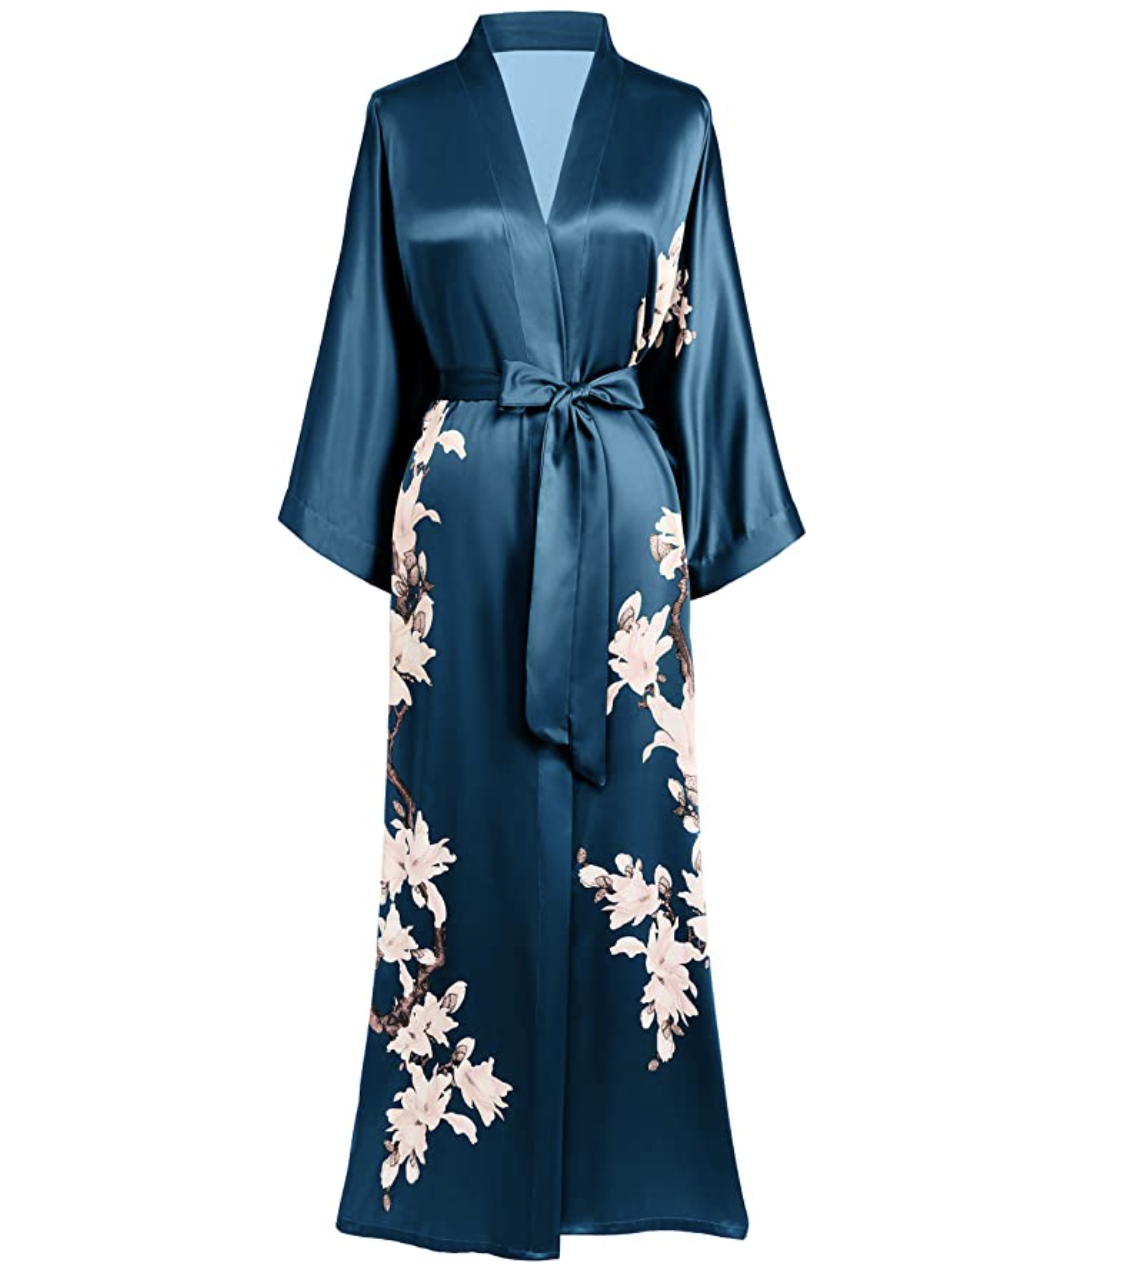 maid-of-honor-gifts-robe